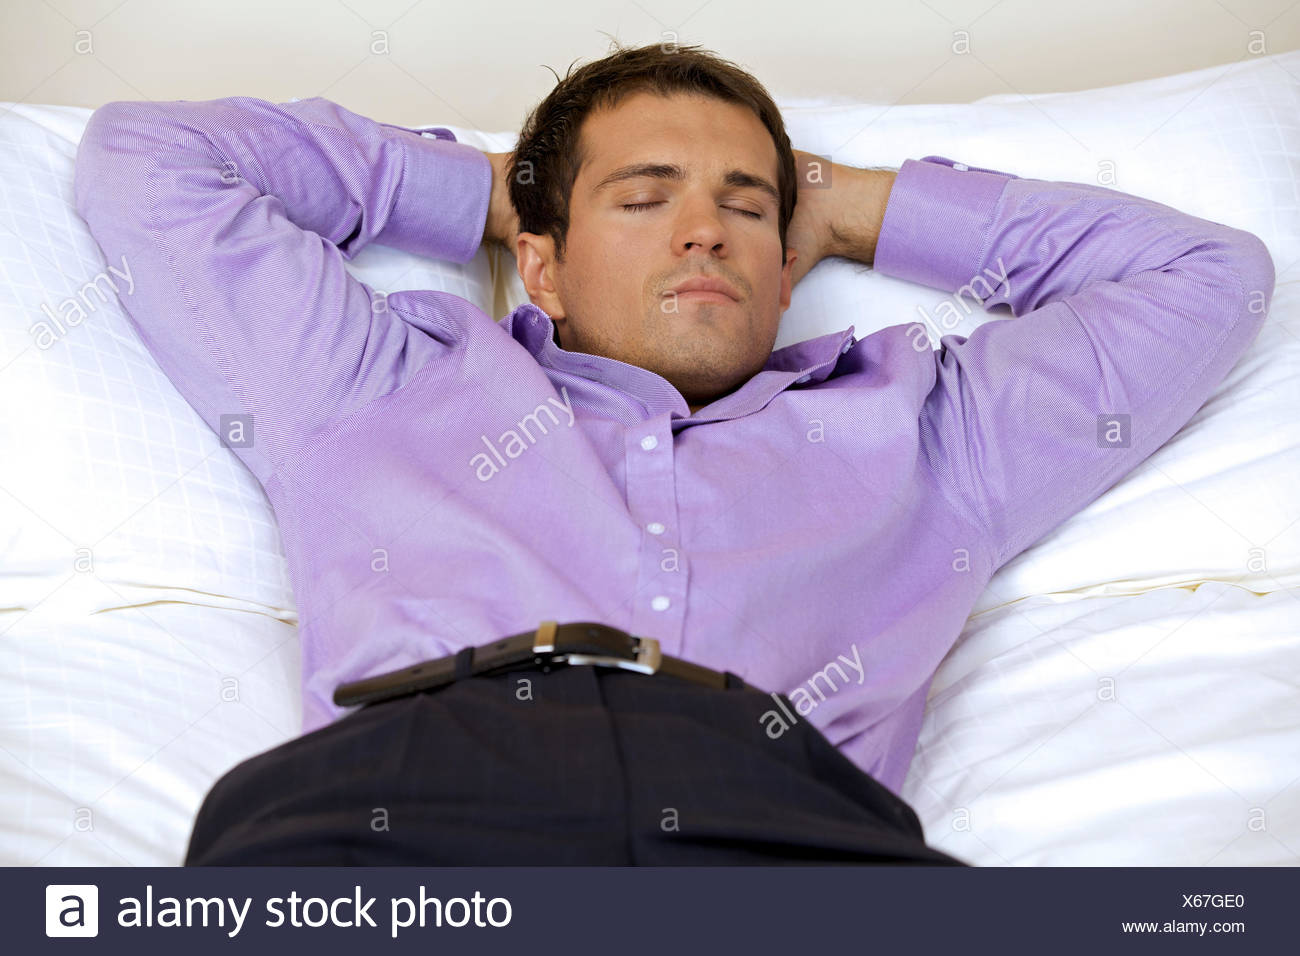 Man relaxing in hotel room with hands behind head, eyes closed - Stock Image